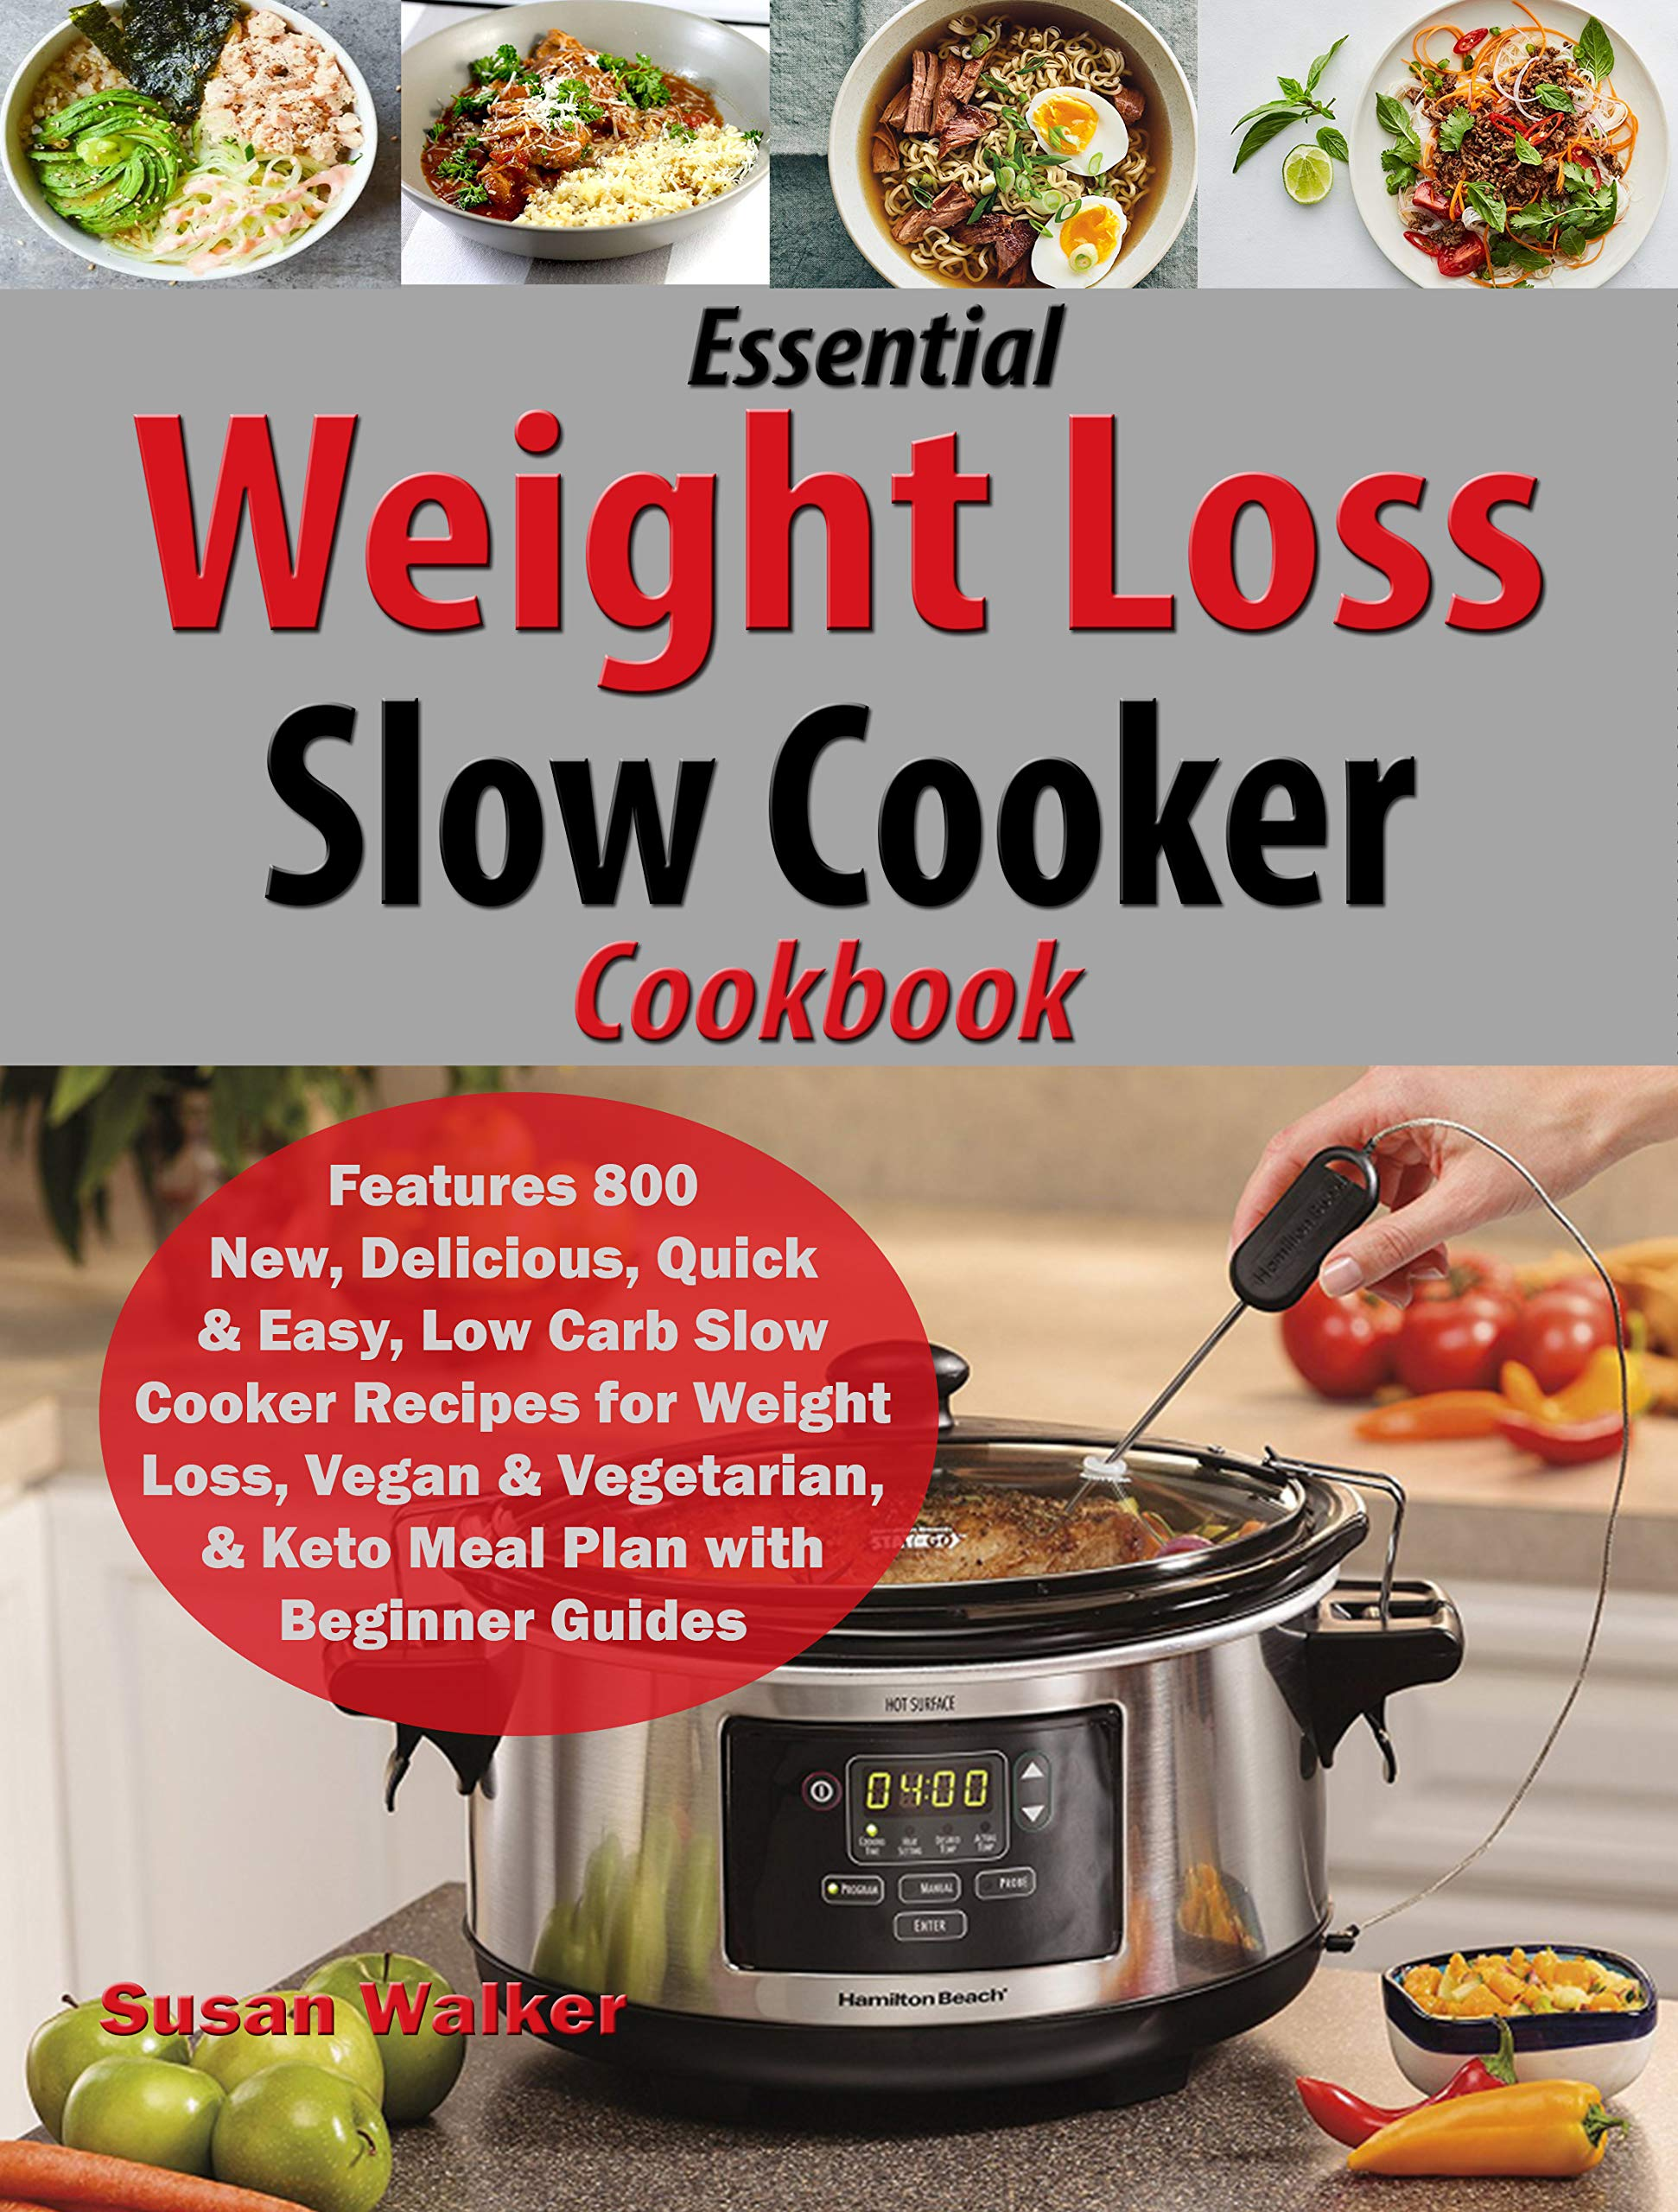 Essential Weight Loss Slow Cooker Cookbook: Features 800 New, Delicious, Quick & Easy, Low Carb Slow Cooker Recipes for Weight Loss, Vegan & Vegetarian, & Keto Meal Plan with Beginner Guides